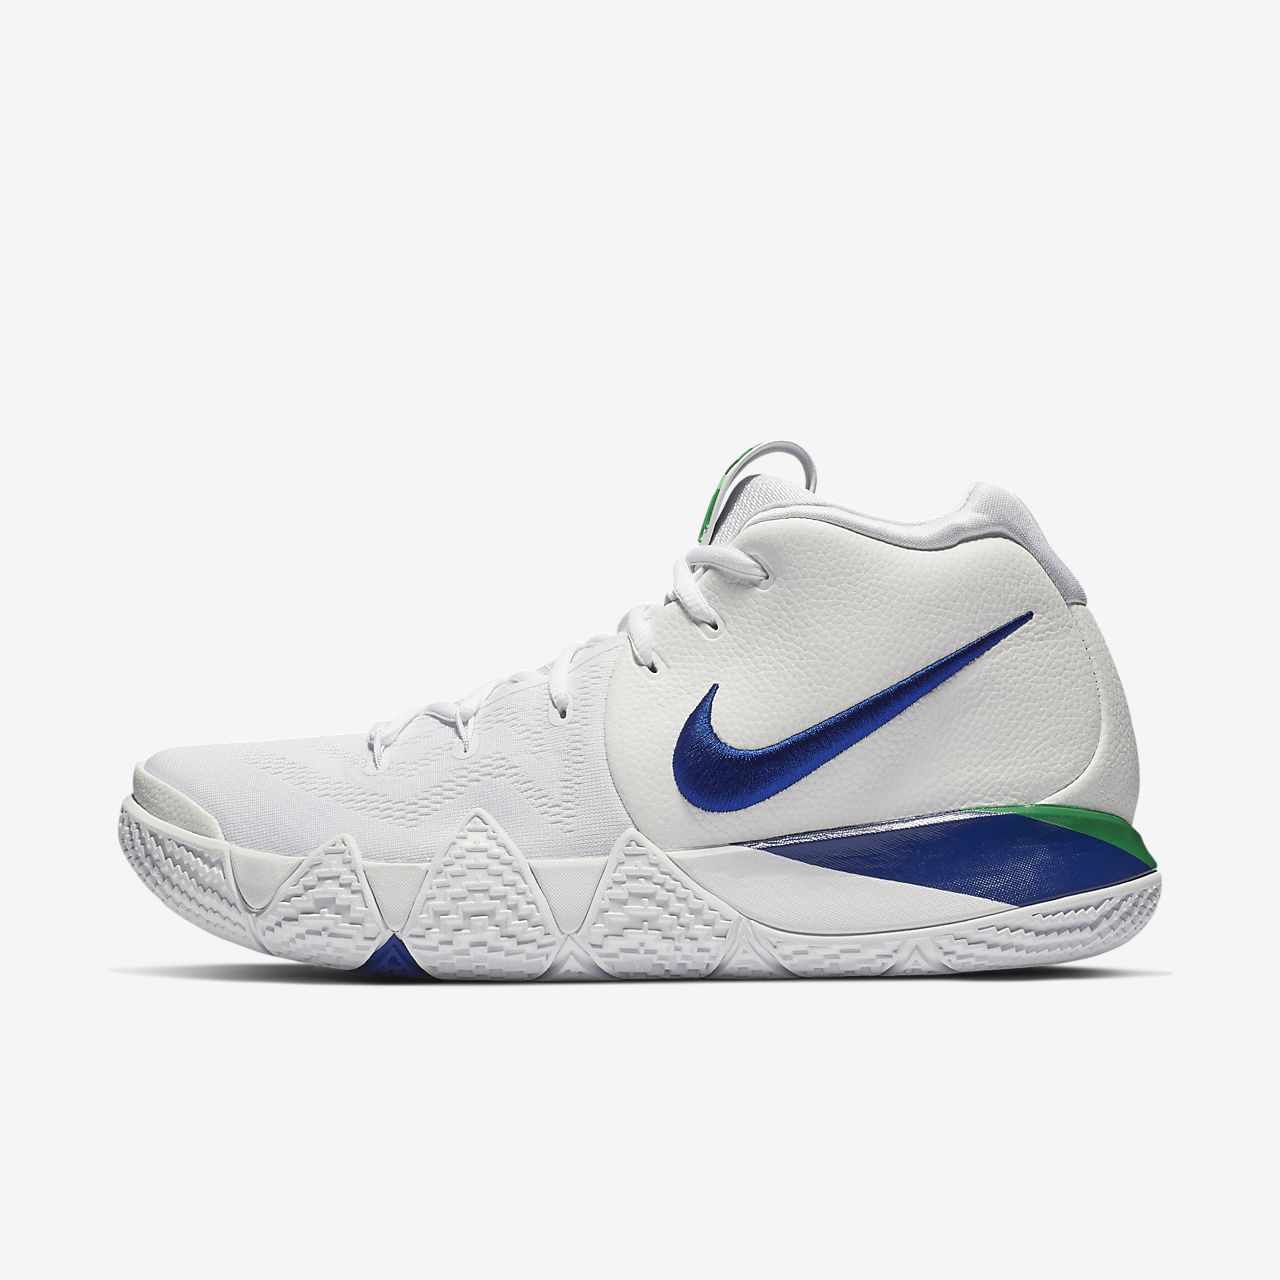 new product ab6cf 4c9d9 denmark yellow gold mens nike kyrie 4 shoes 1b904 c6793